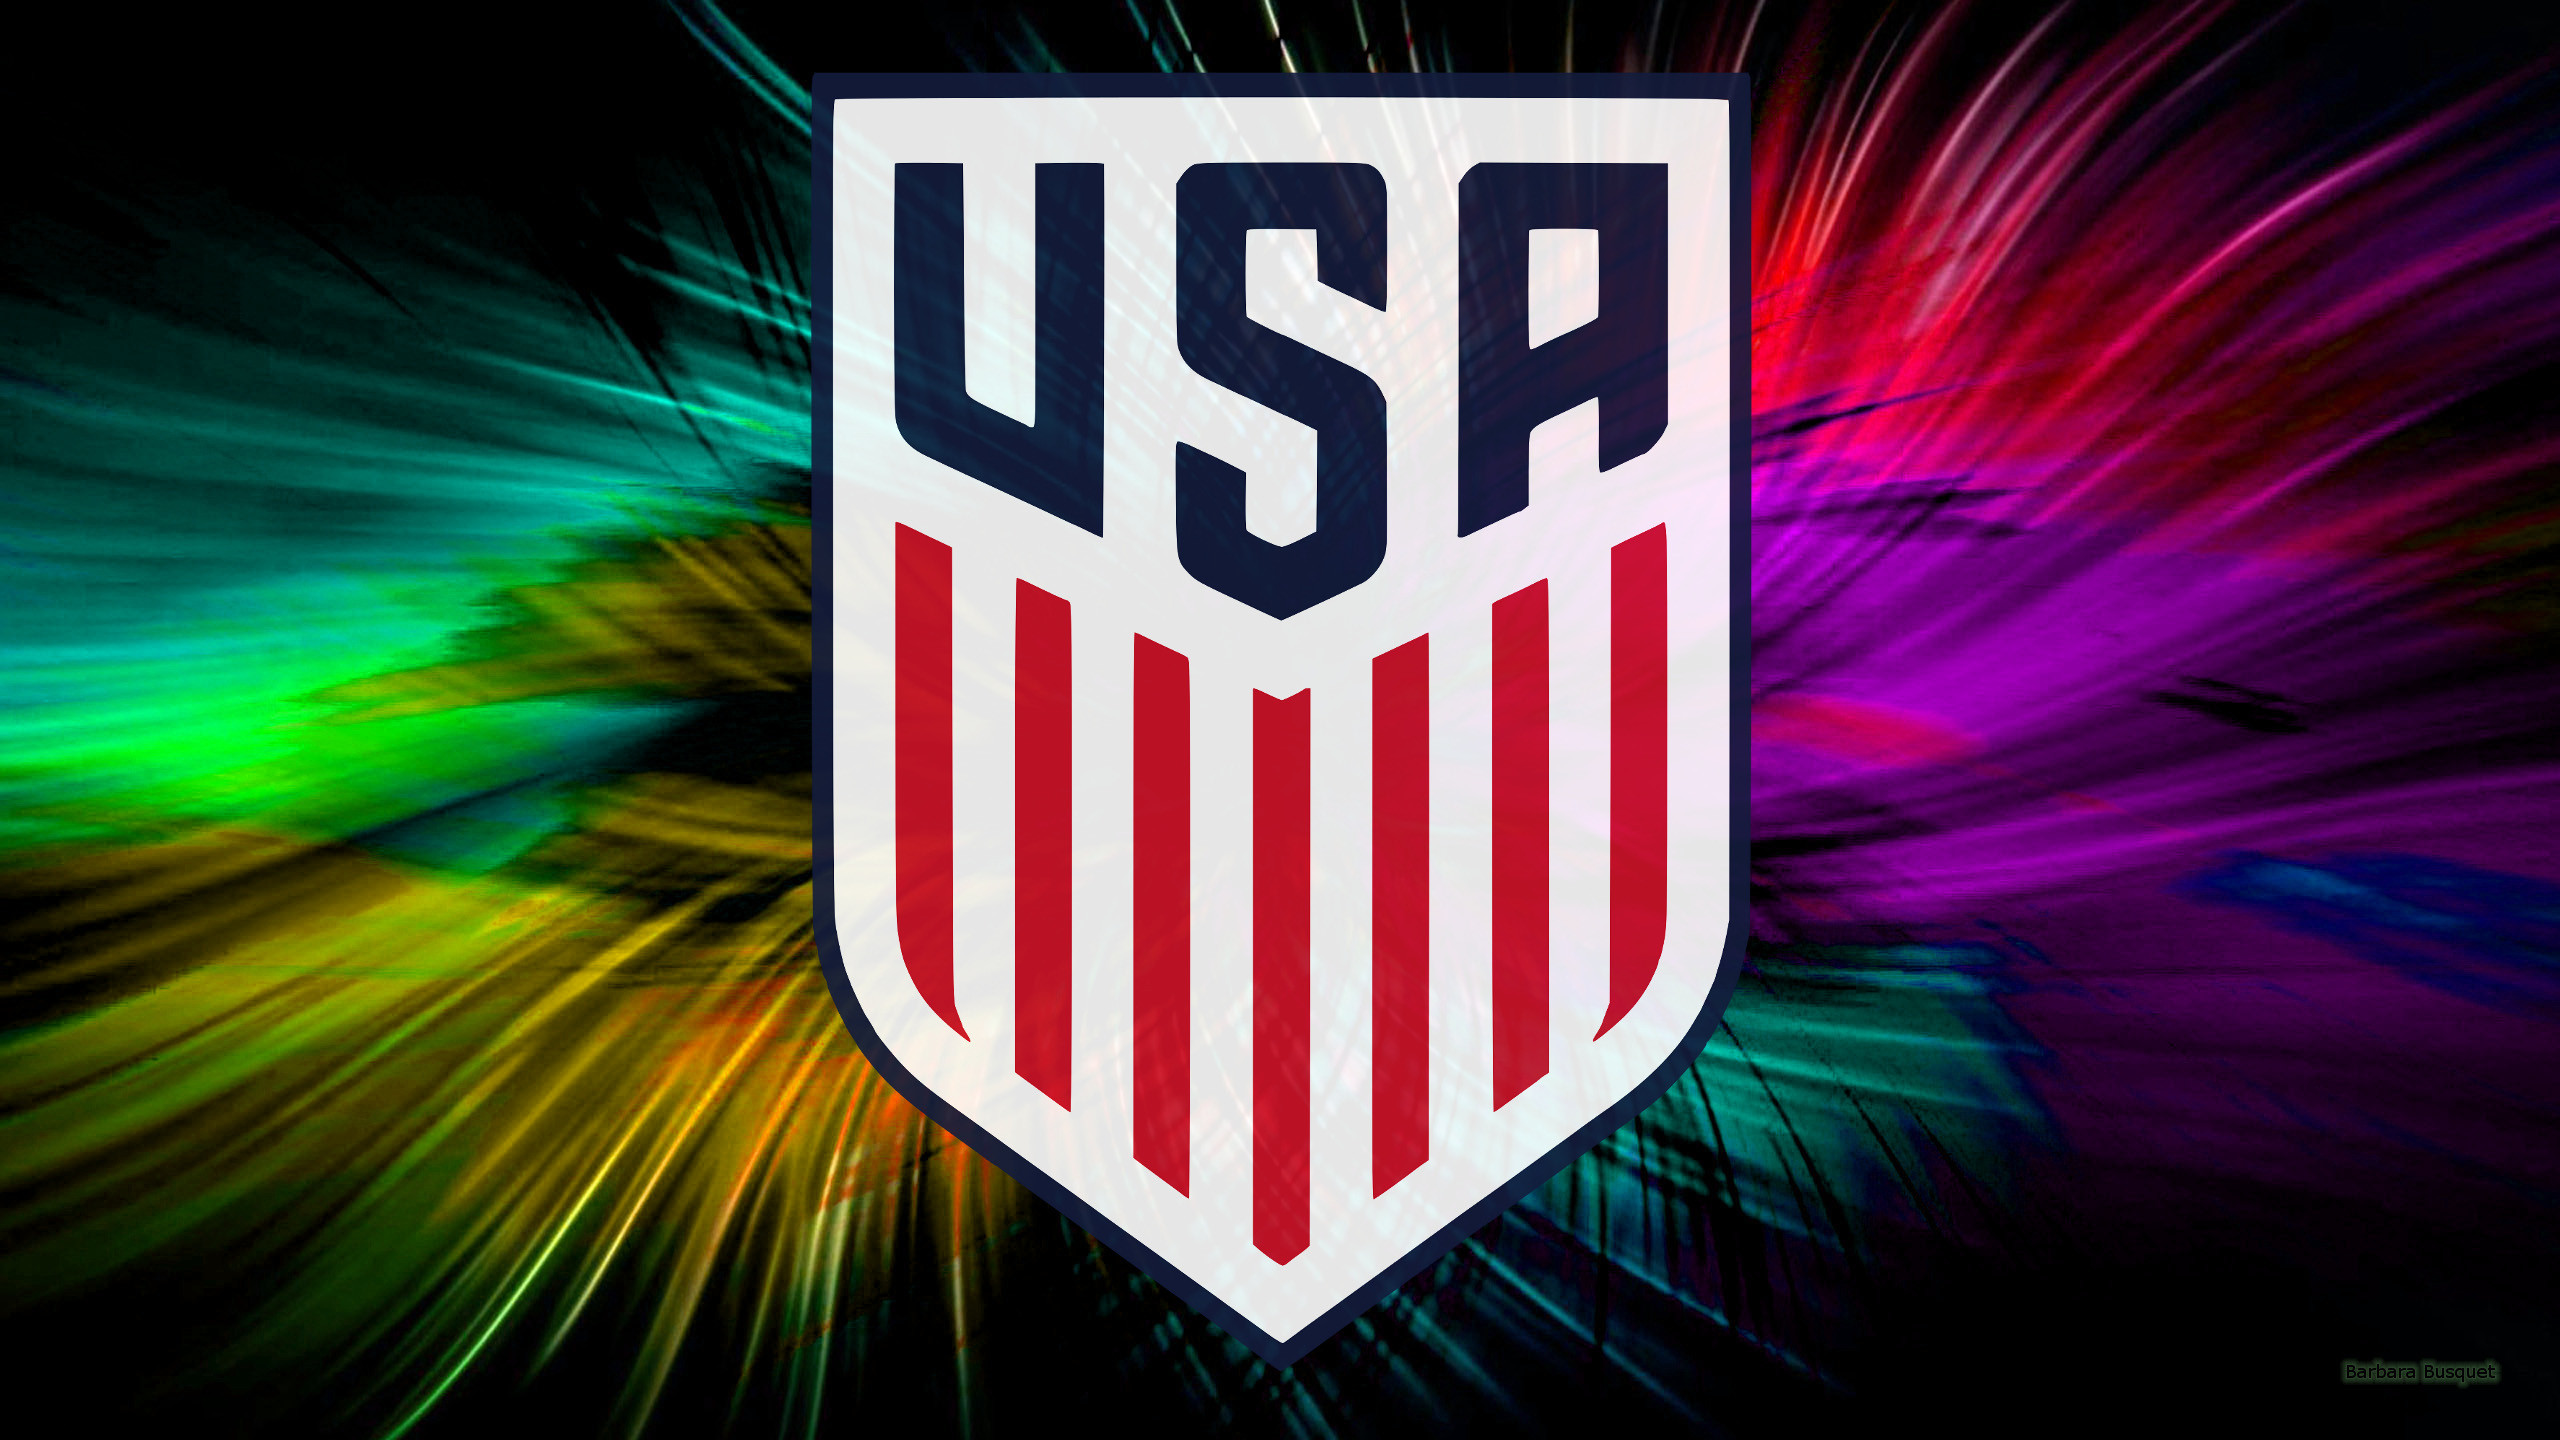 wallpapers usa united - photo #19